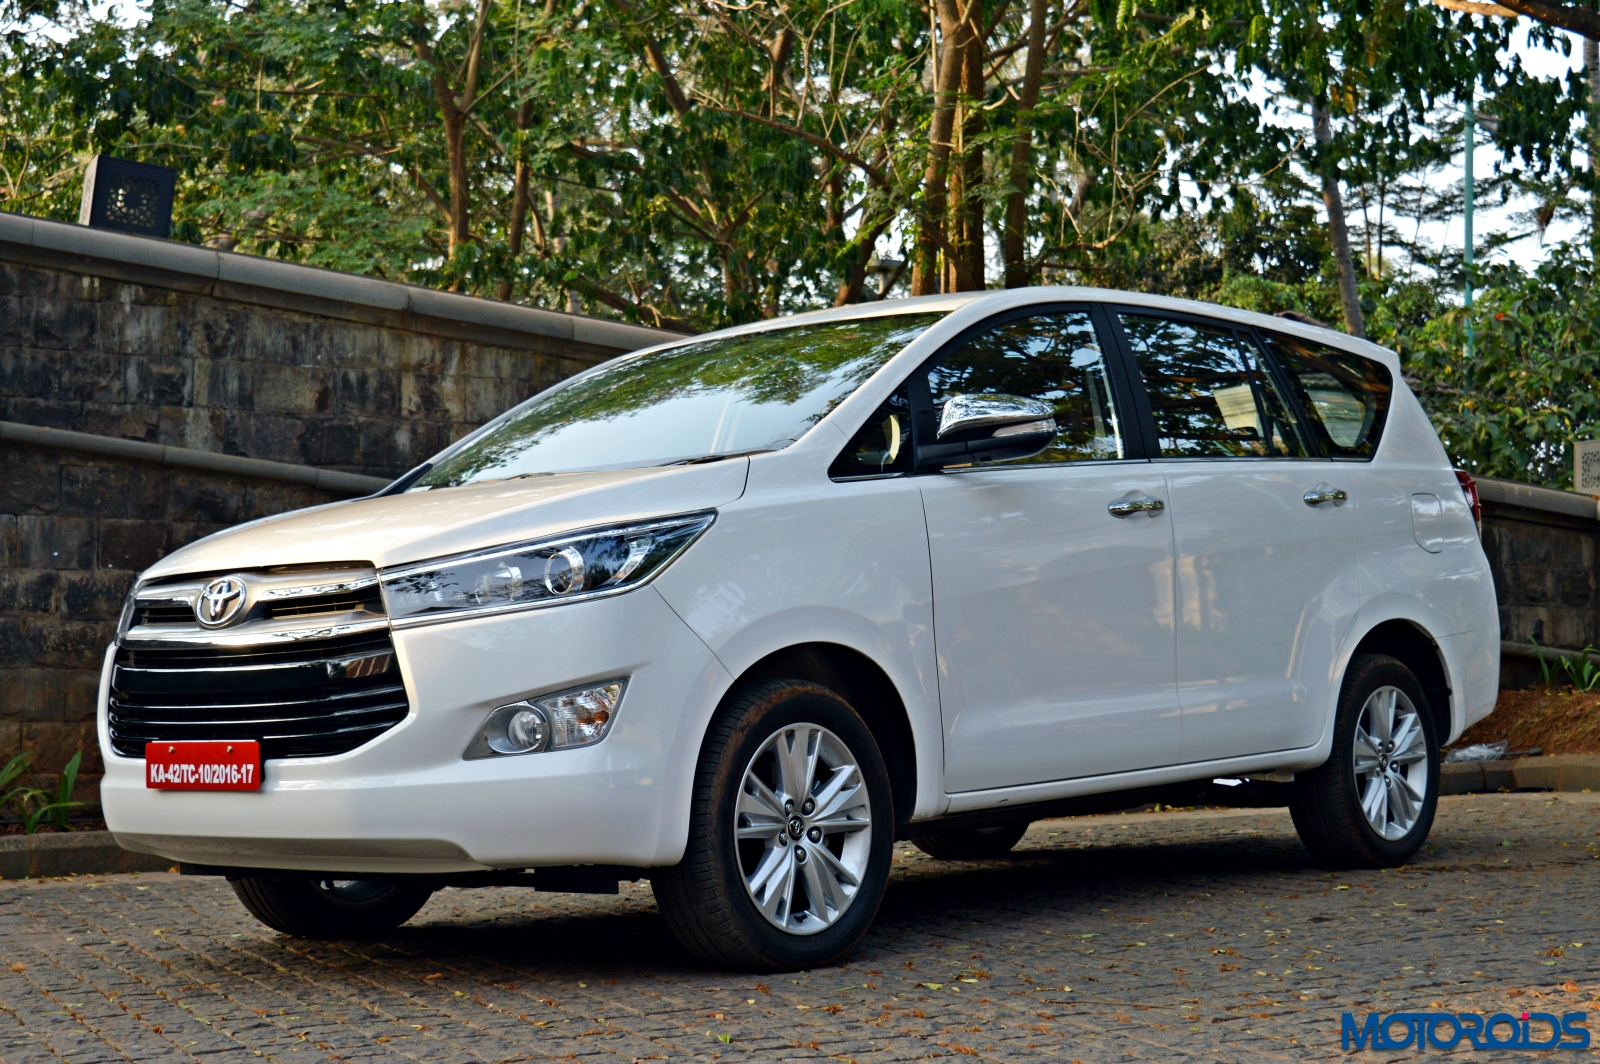 New 2016 Toyota Innova Crysta Launched In India Top Variant Prices Shot Up By More Than 4 Lakh